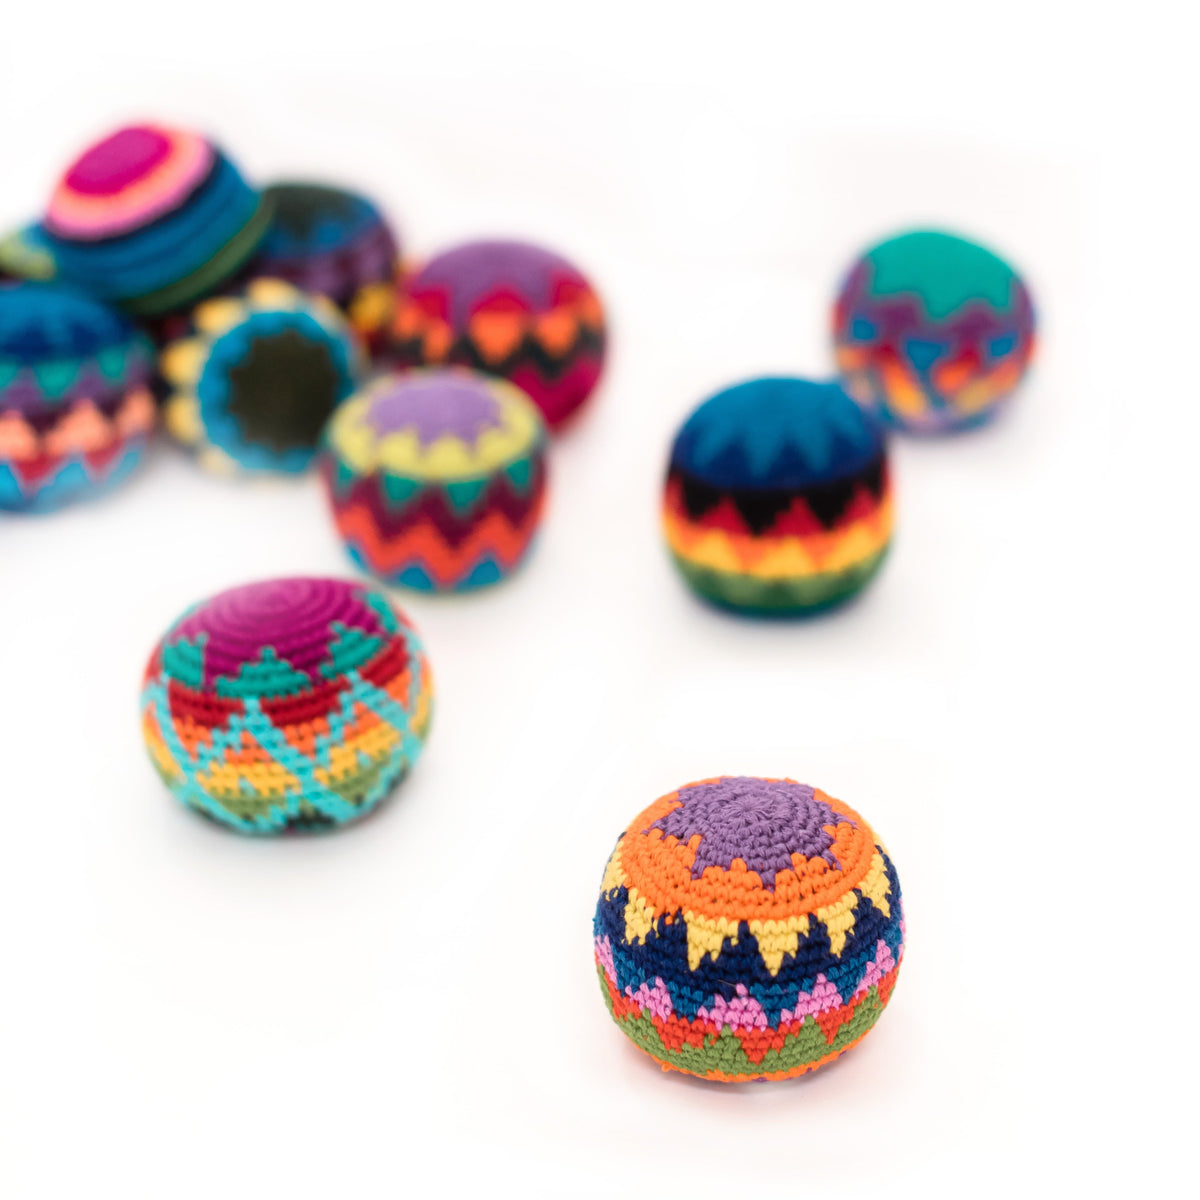 Group of Fair Trade Colorful Hacky Sack